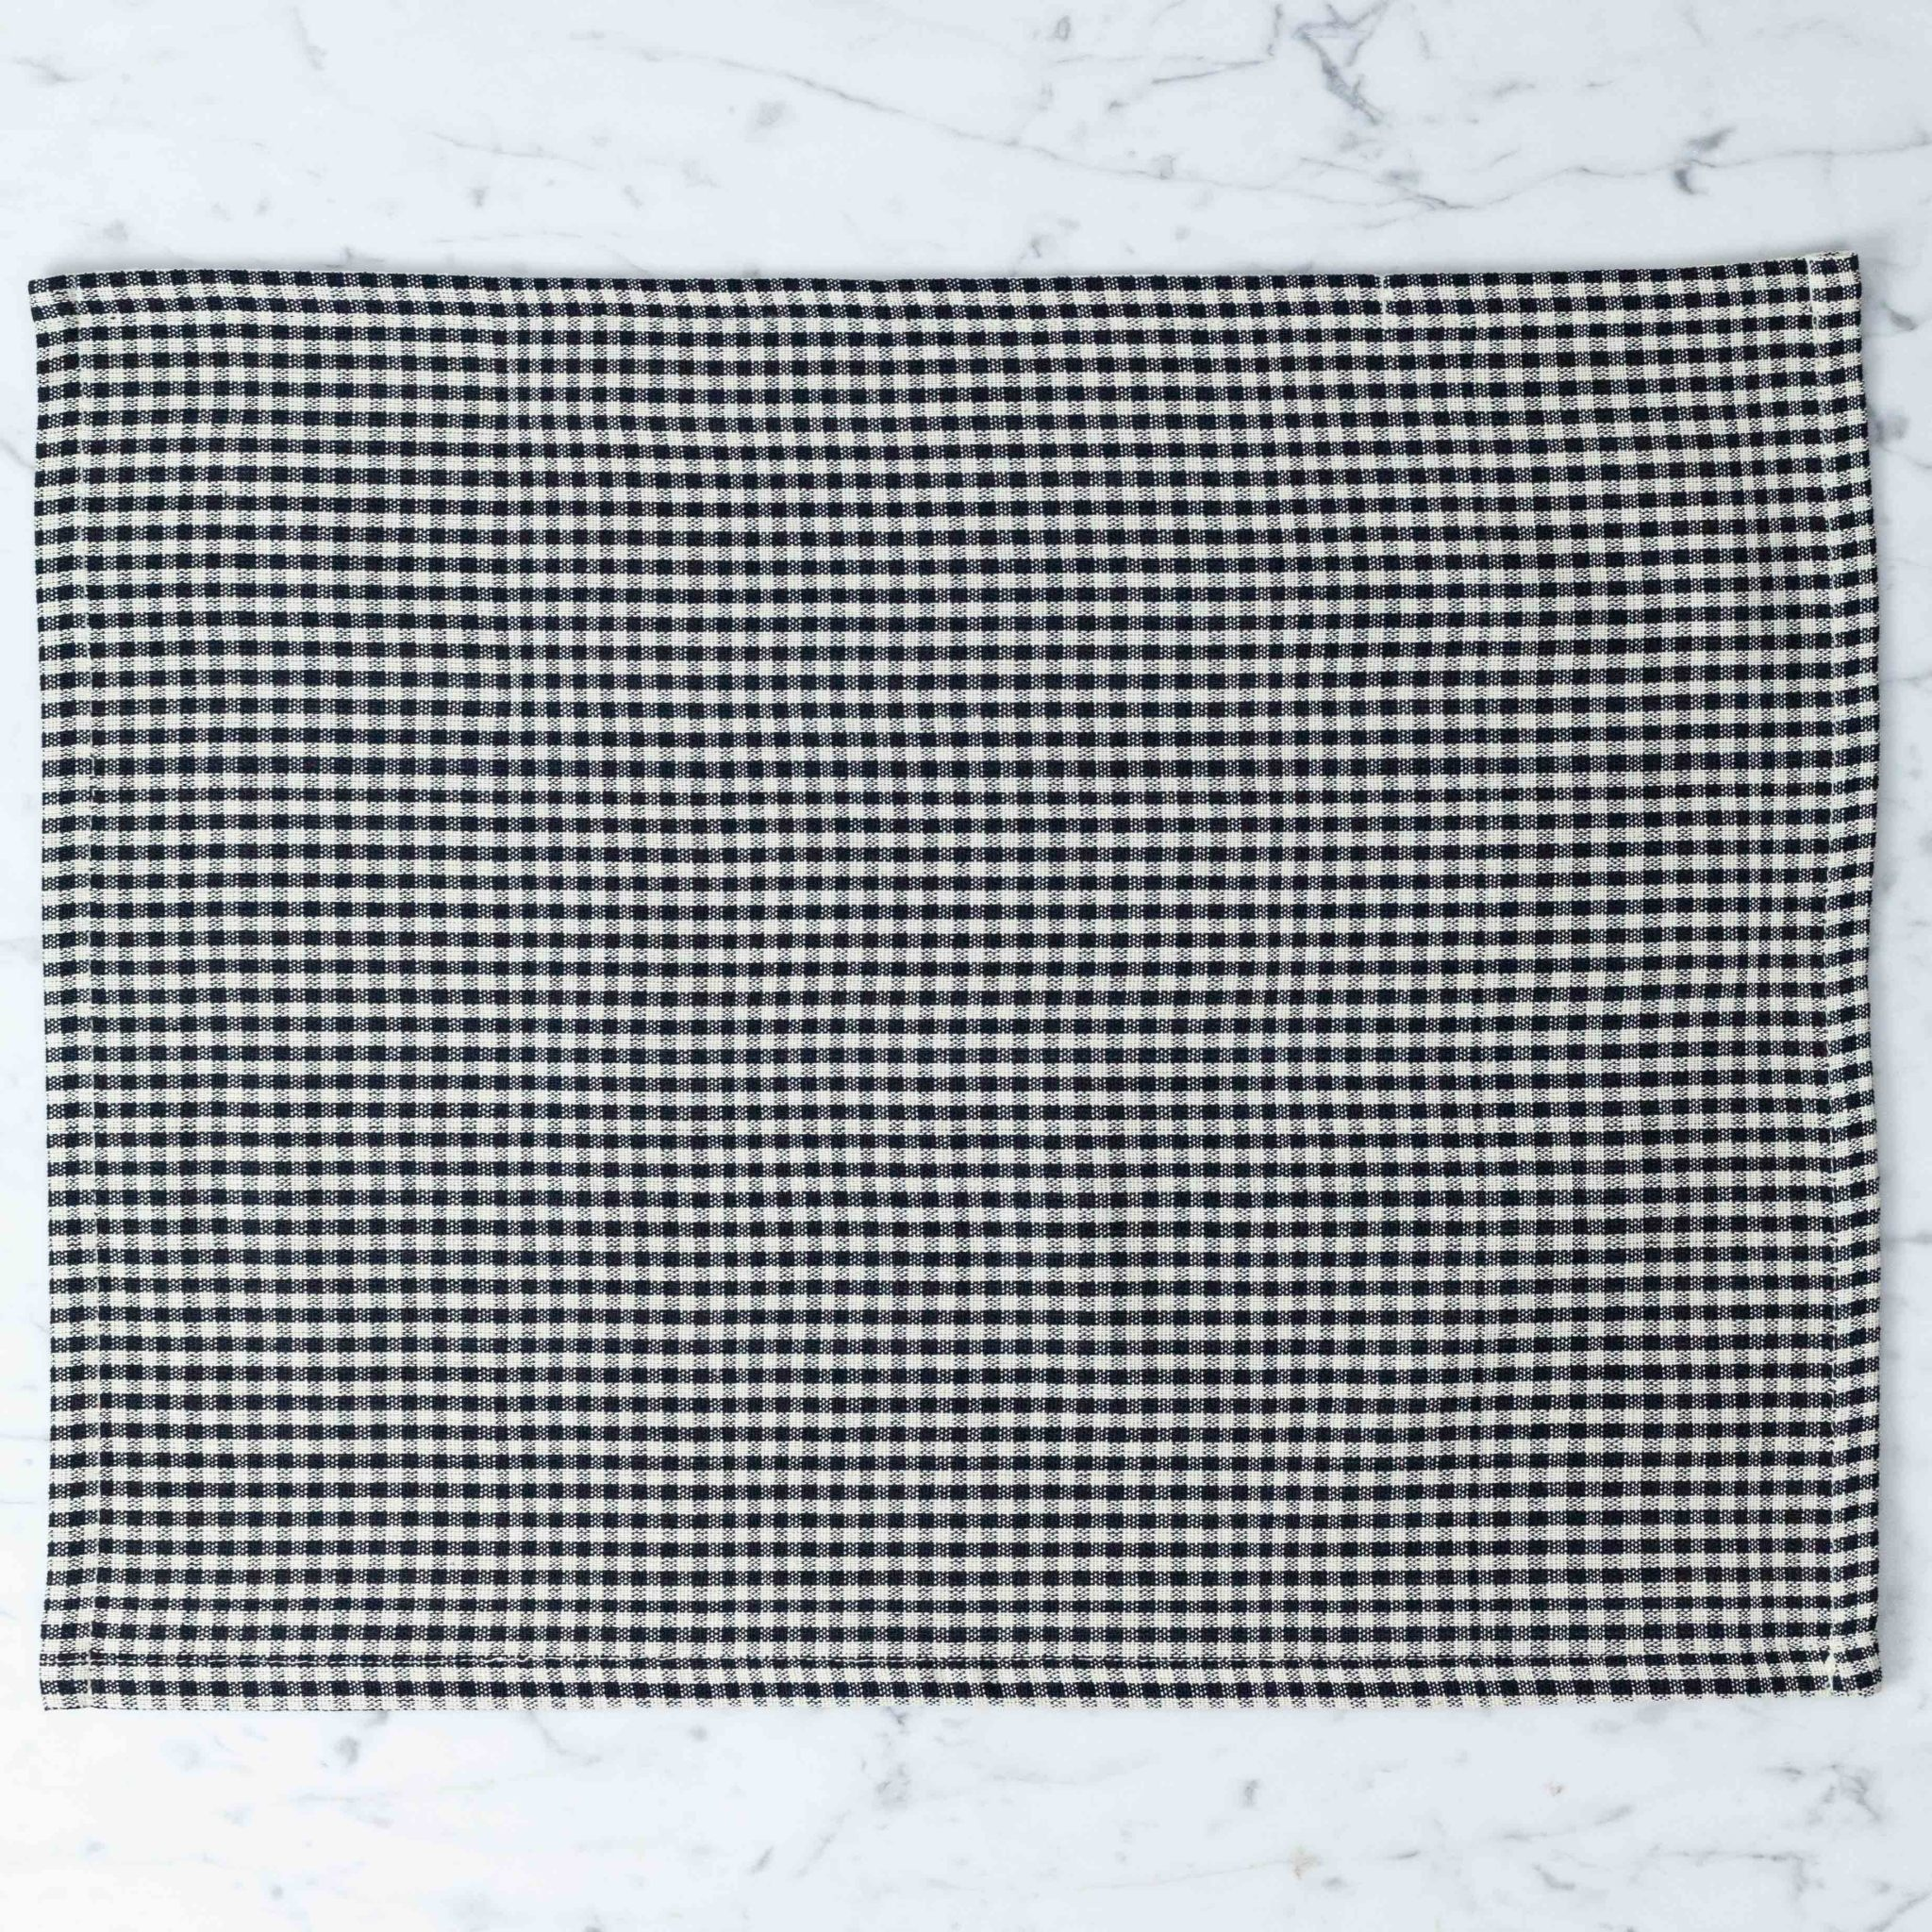 TENSIRA Handwoven Cotton Placemat - Black + White Gingham - 14 x 18 inch